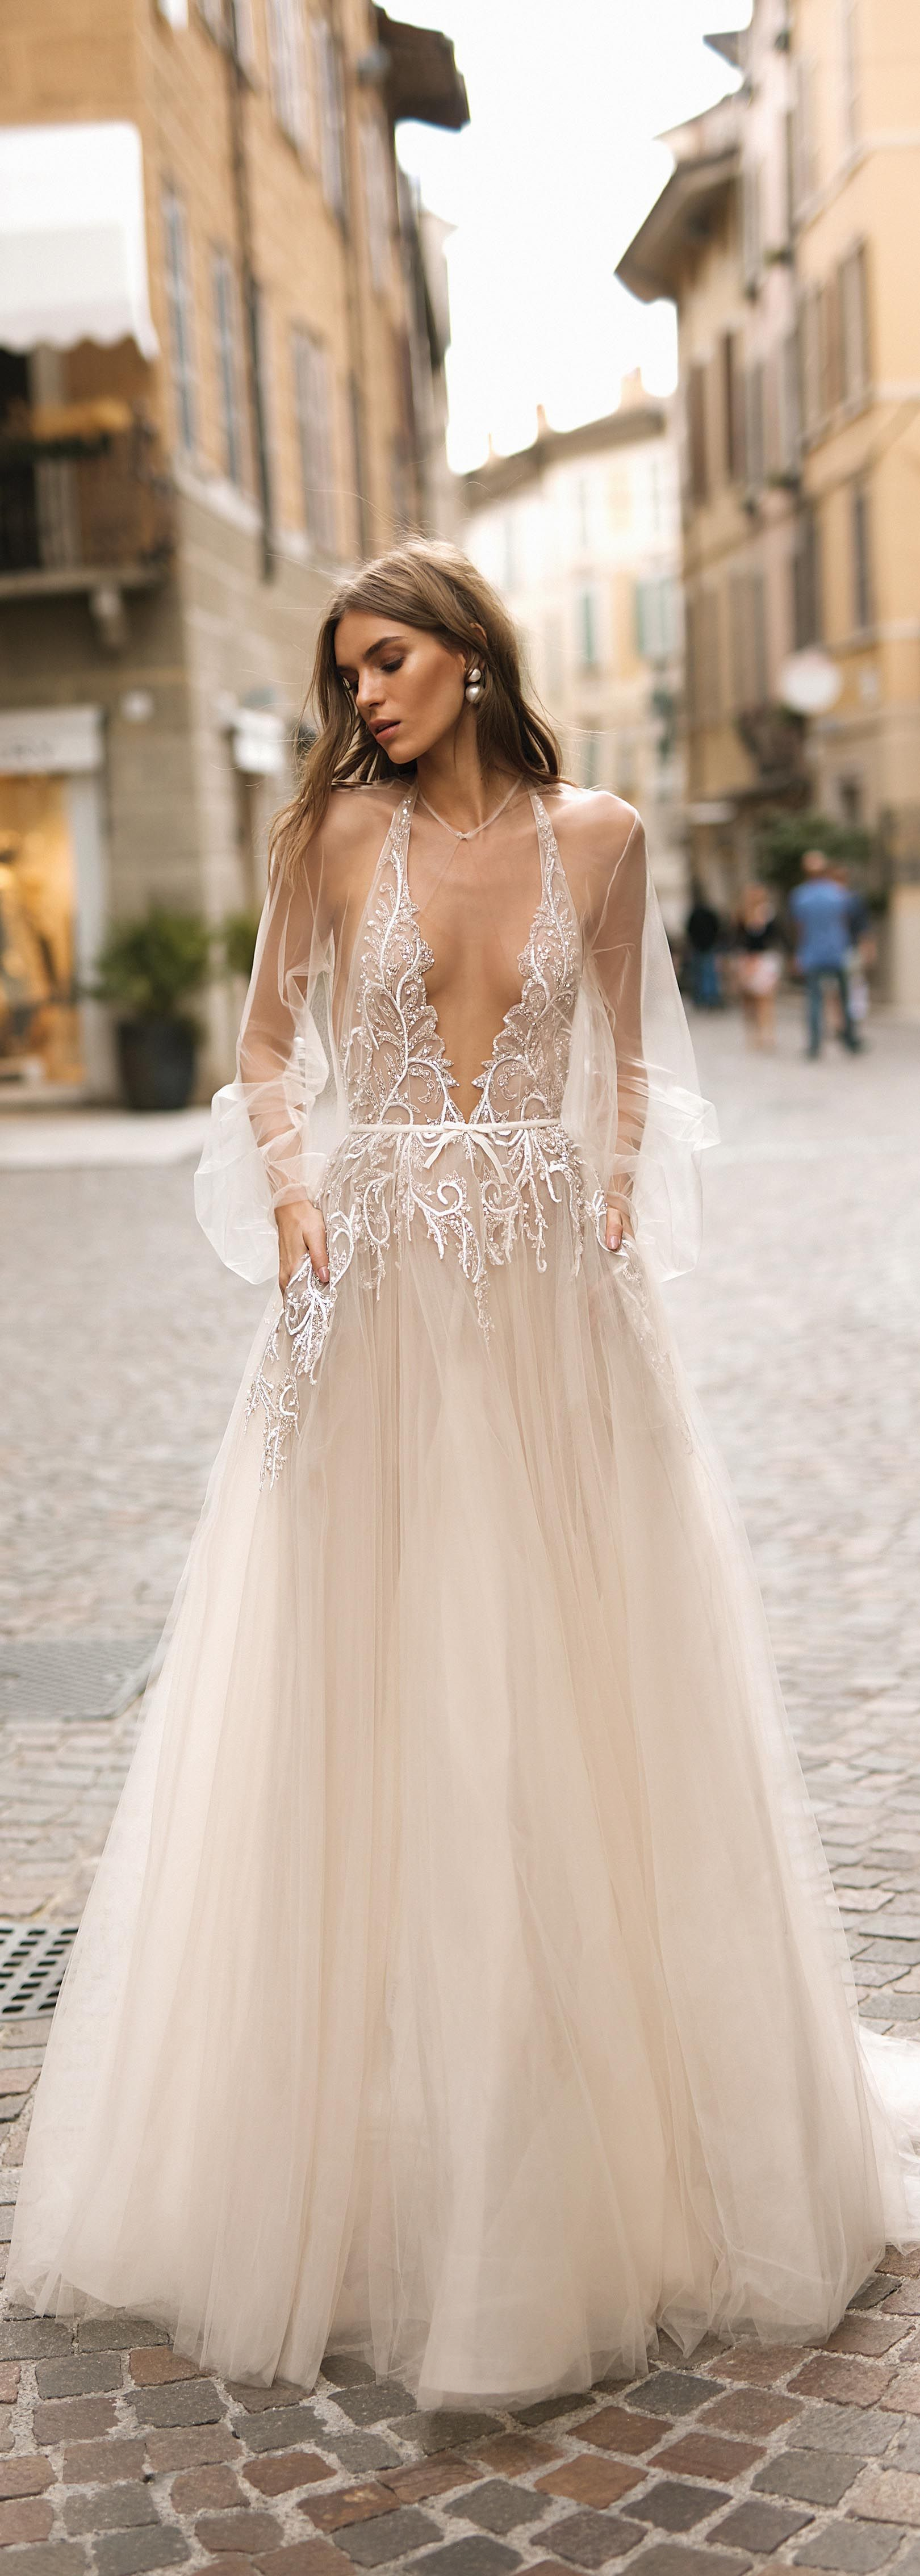 Wedding dress with collar  Pin by Laura Andrea Castro on gangway  Pinterest  Wedding dress